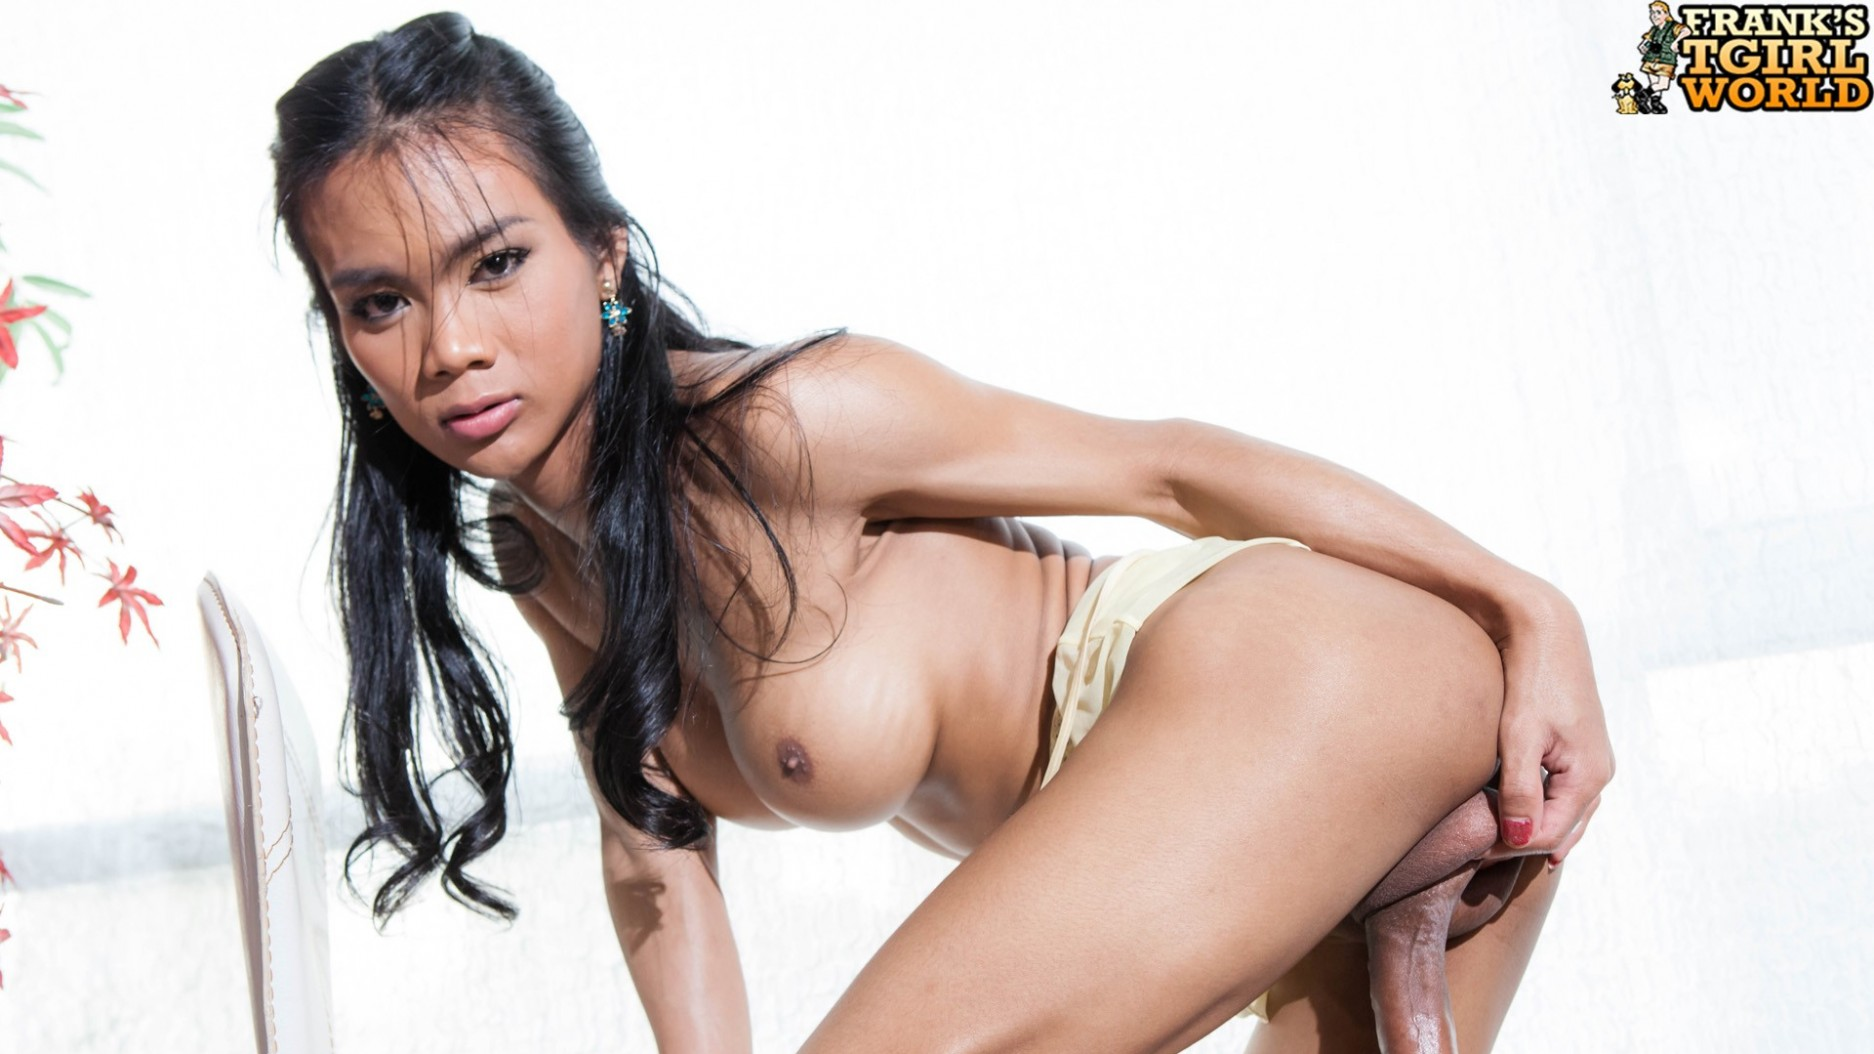 Excellent Asian hung franks tgirl world consider